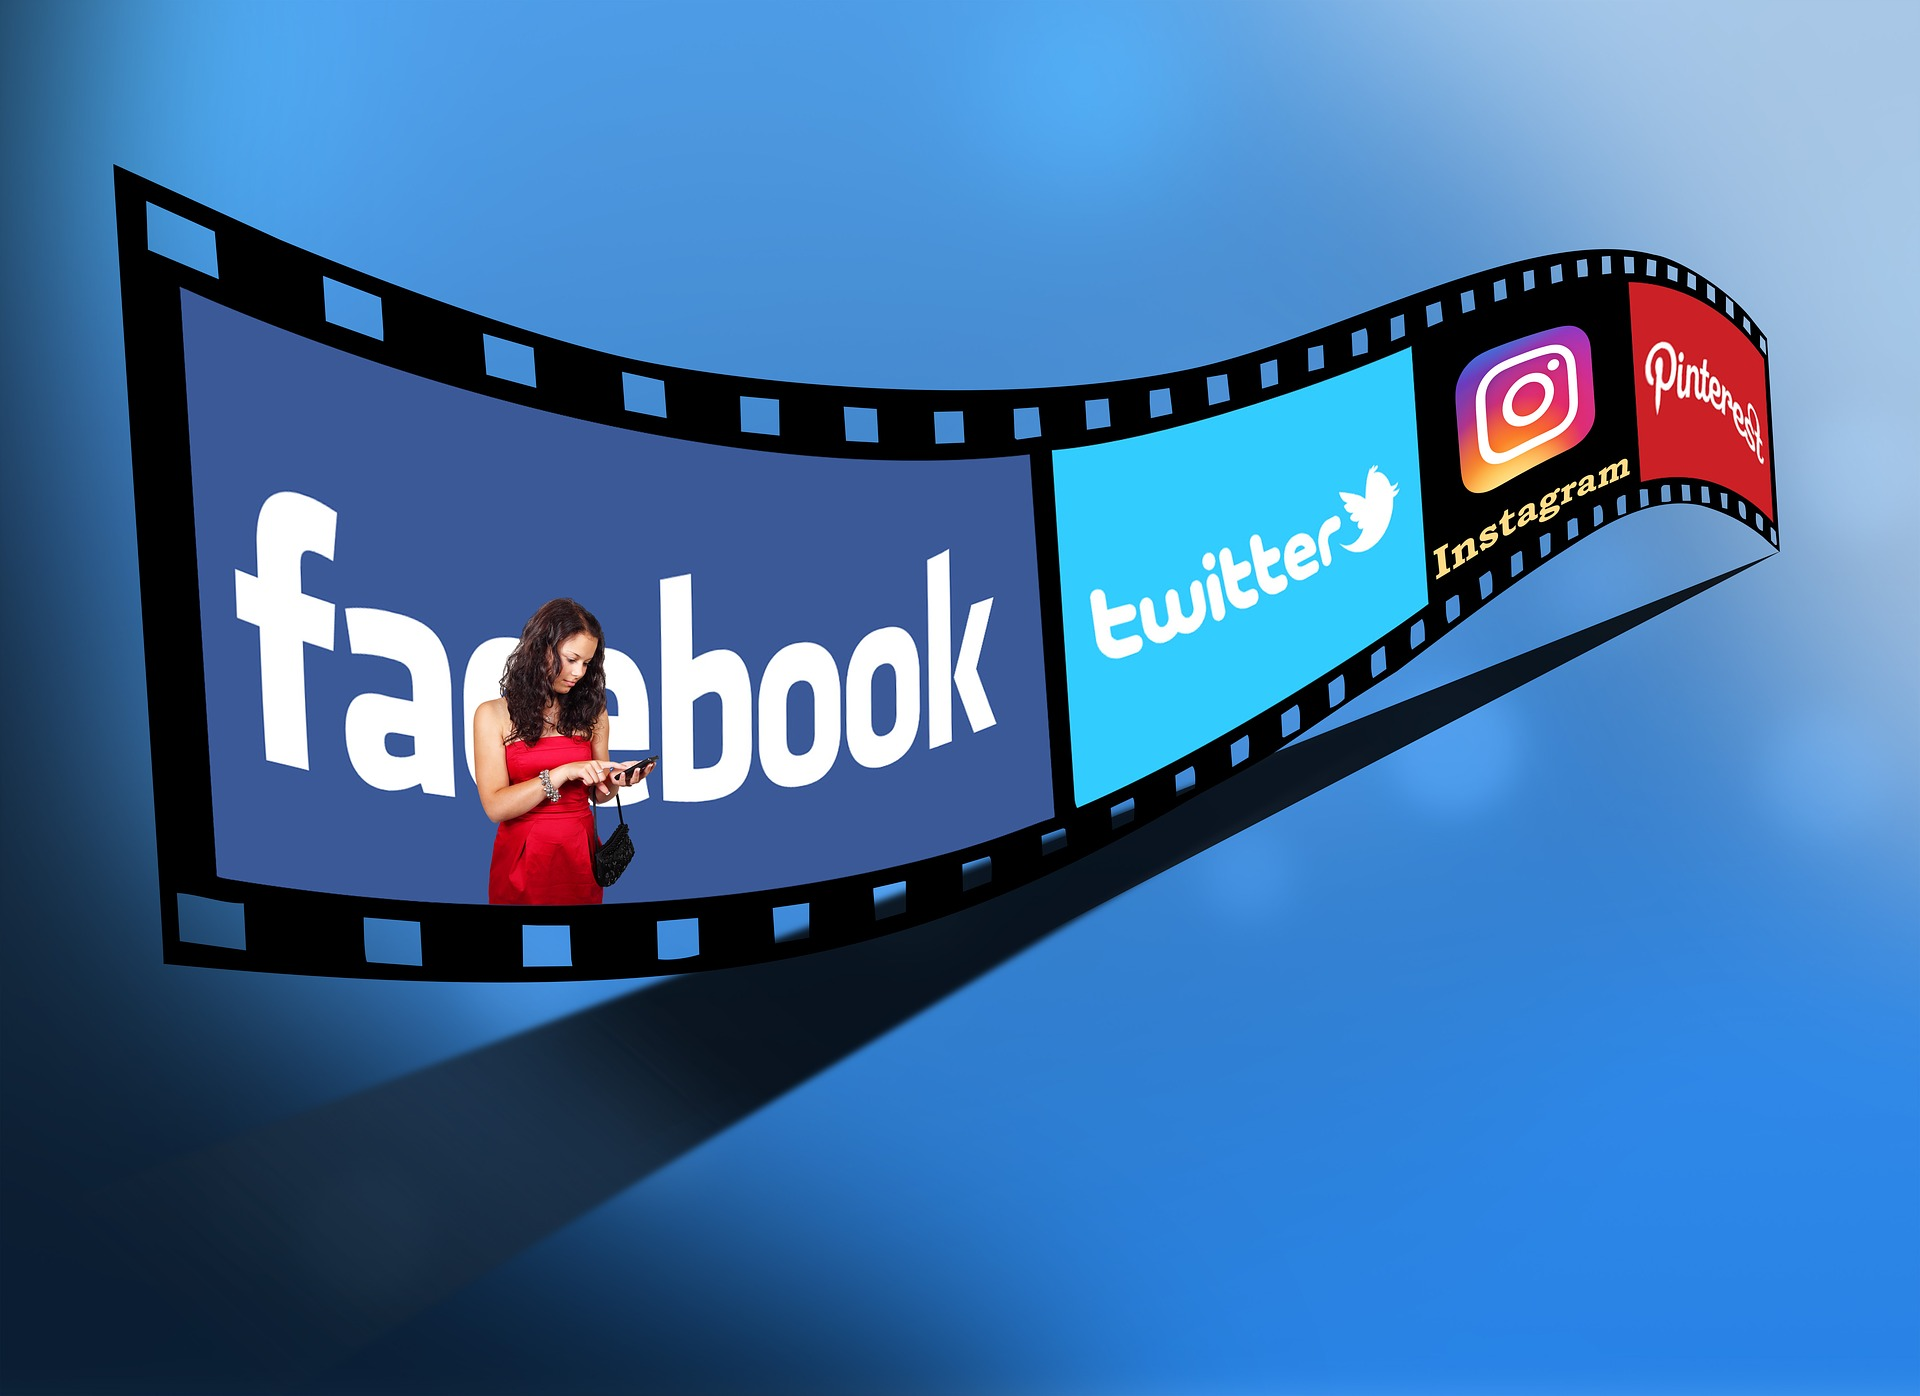 How long should social media videos be?